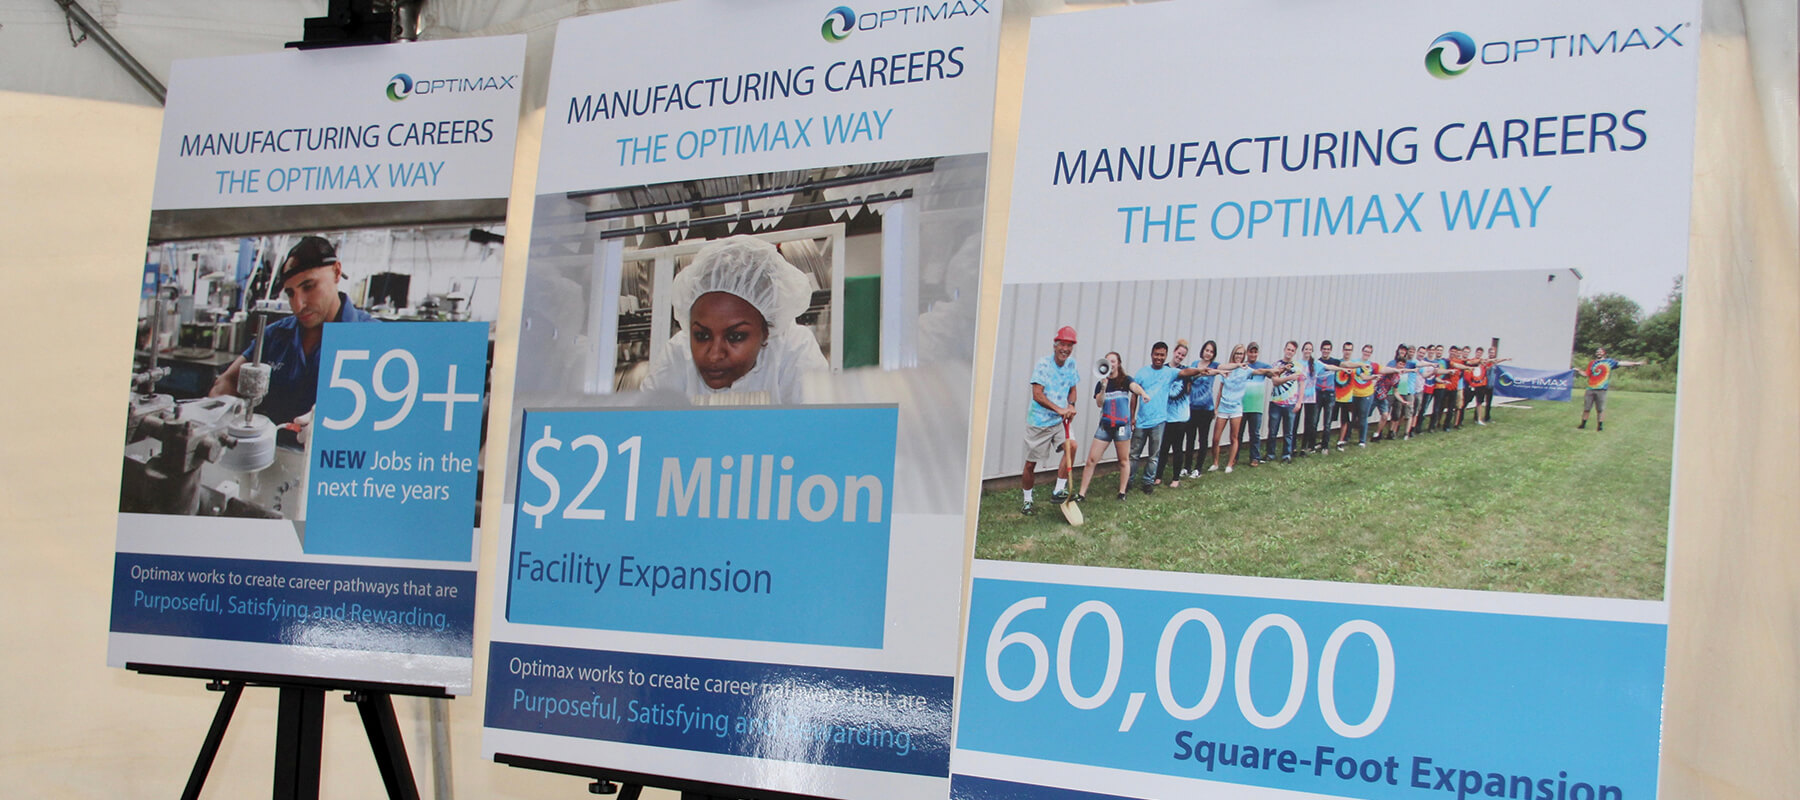 Optimax groundbreaking expansion